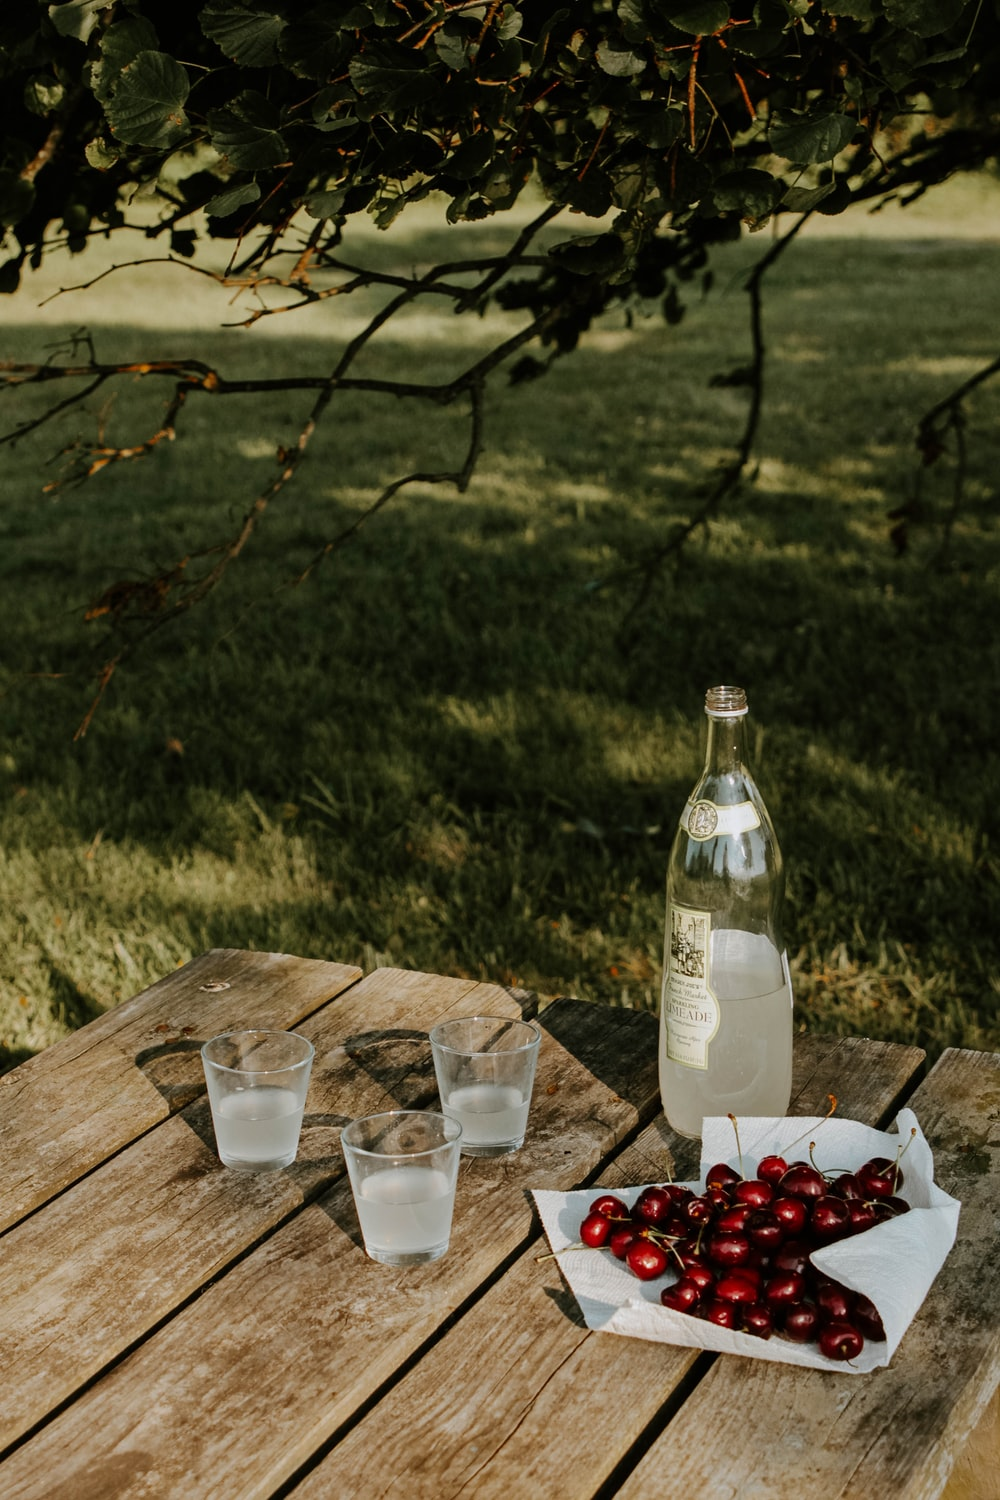 clear glass bottle on brown wooden table